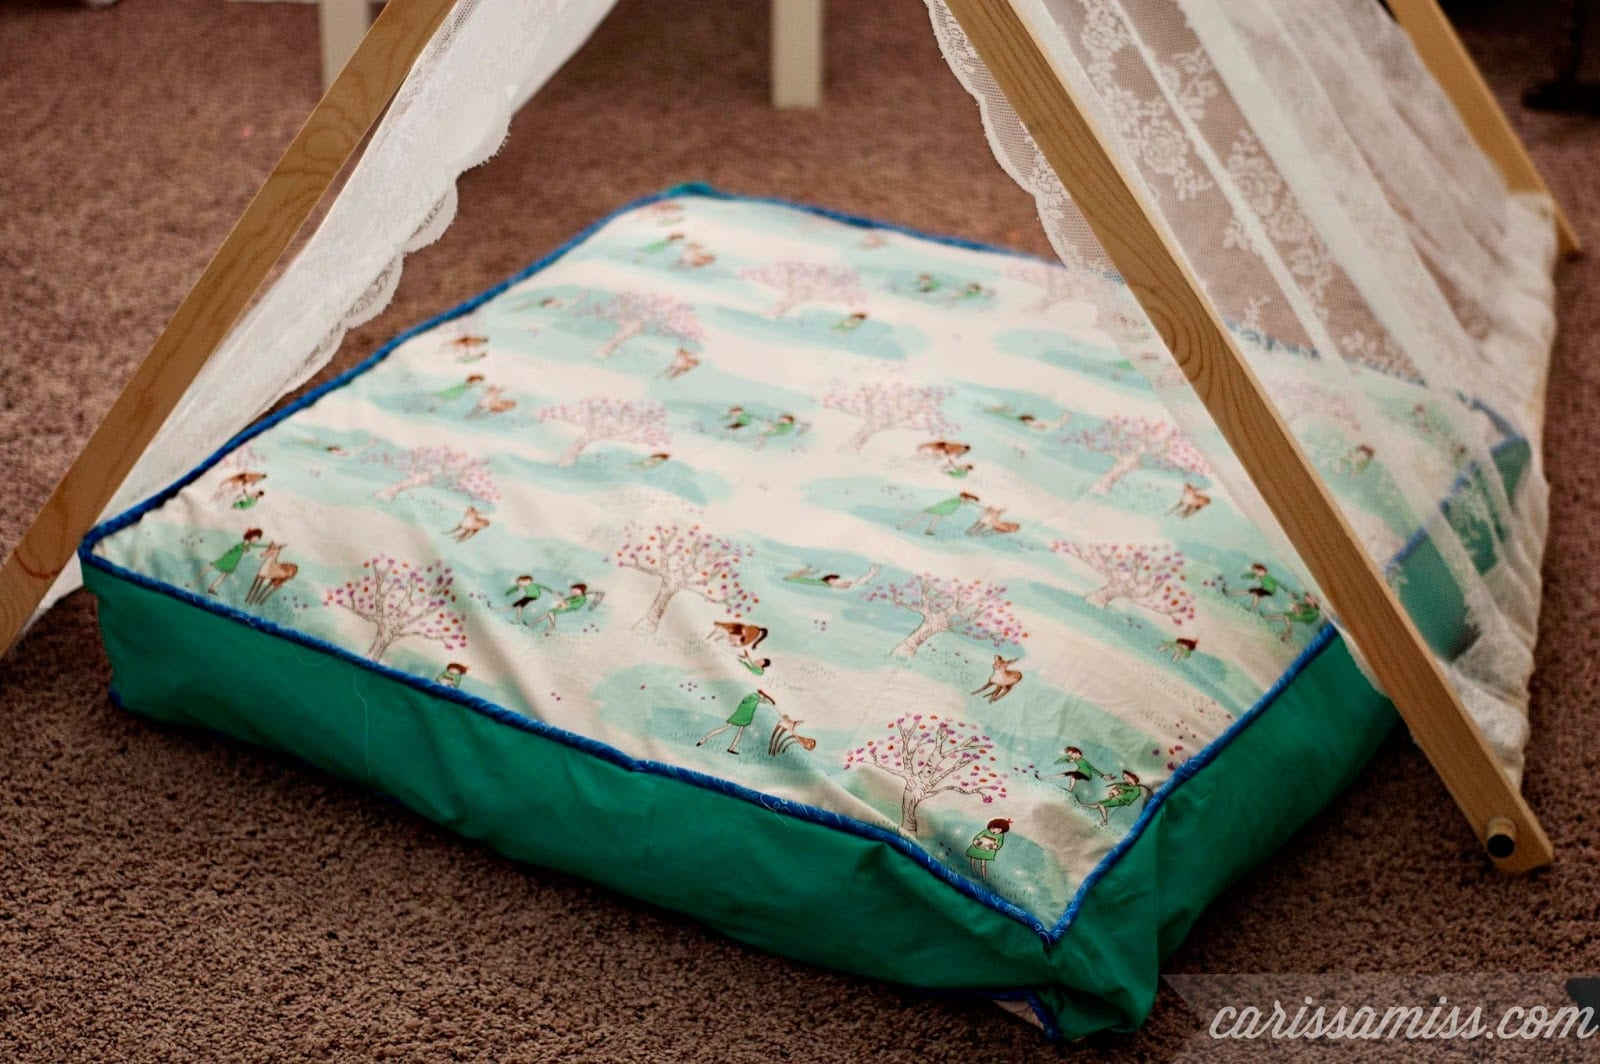 Floor Pillows Playroom : 12 Ways to Decorate a Playroom - Page 3 of 13 - How To Build It